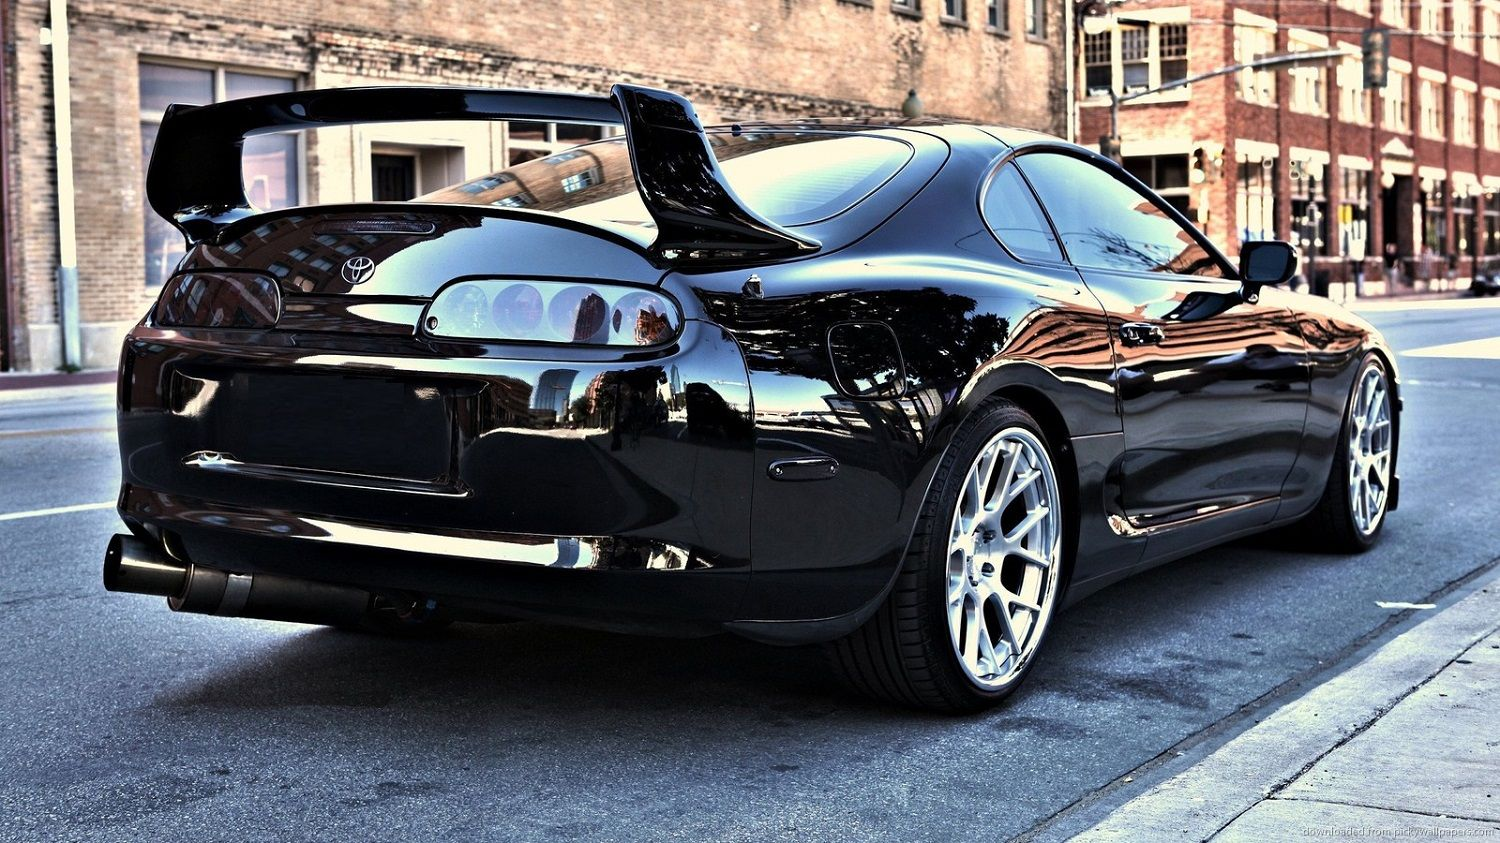 Affordable Used Toyota Supra Sports Cars For Sale   The all in season and in demand, a cult classic and crown favorite, Toyota Celica Supra sports ... http://www.ruelspot.com/toyota/affordable-used-toyota-supra-sports-cars-for-sale/  #ToyotaCelicaSupra #ToyotaCelicaXX #ToyotaSupraForSale